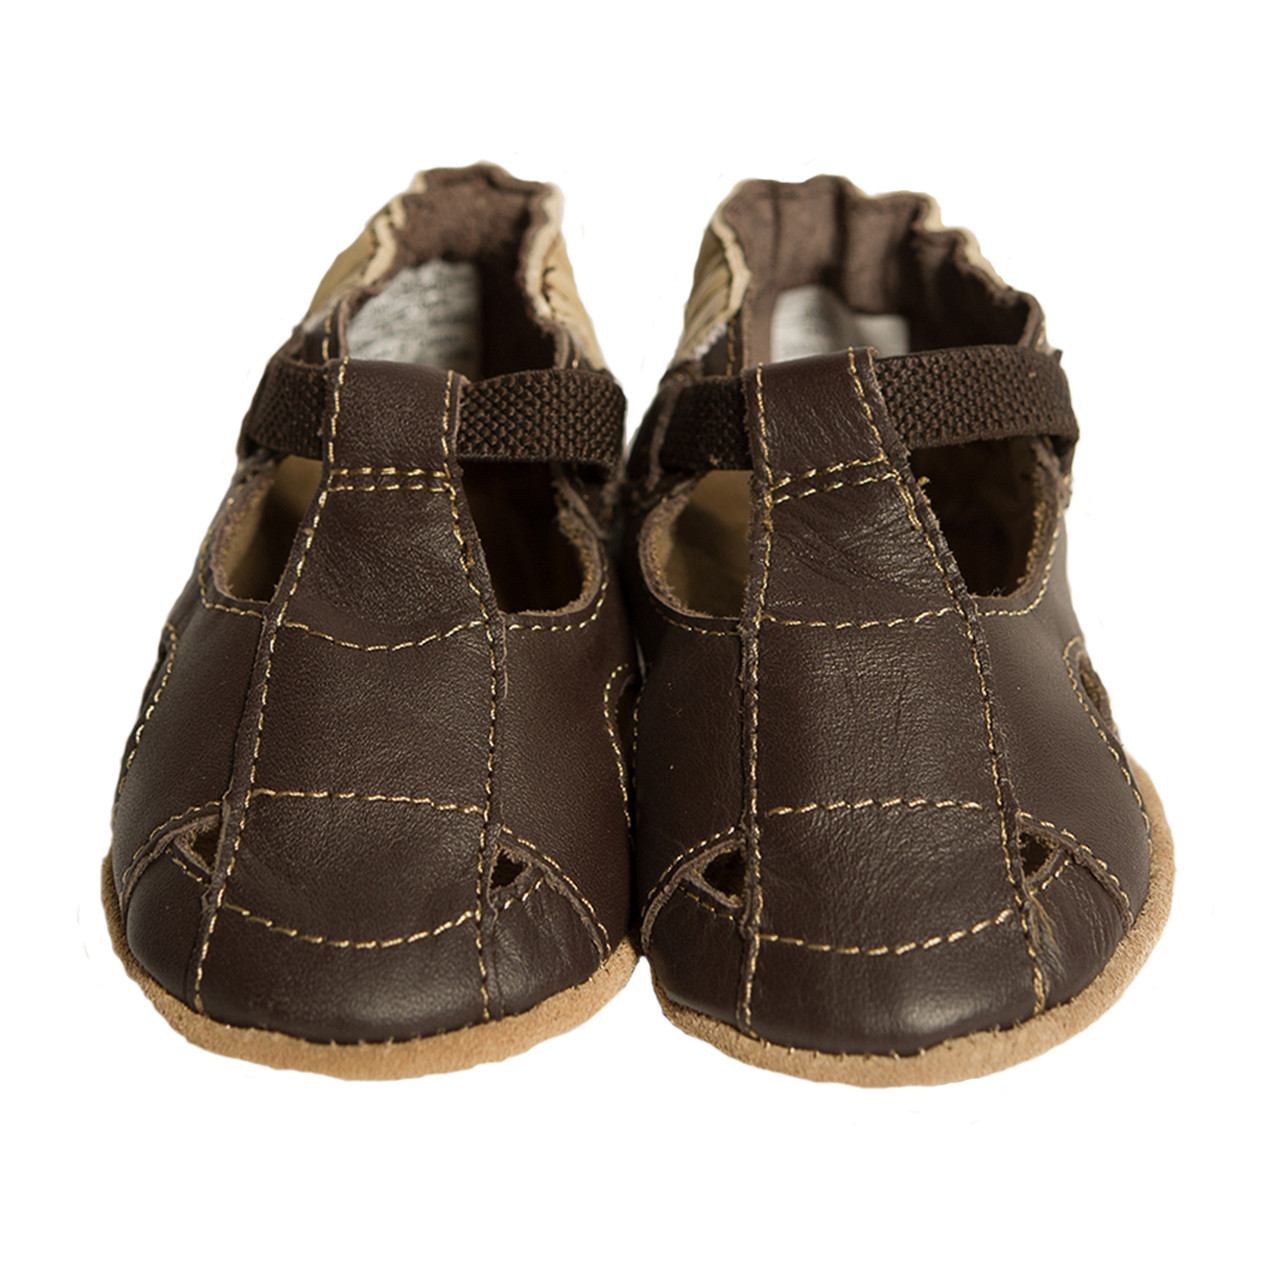 Robeez Fisherman Sandal Baby Shoes Brown